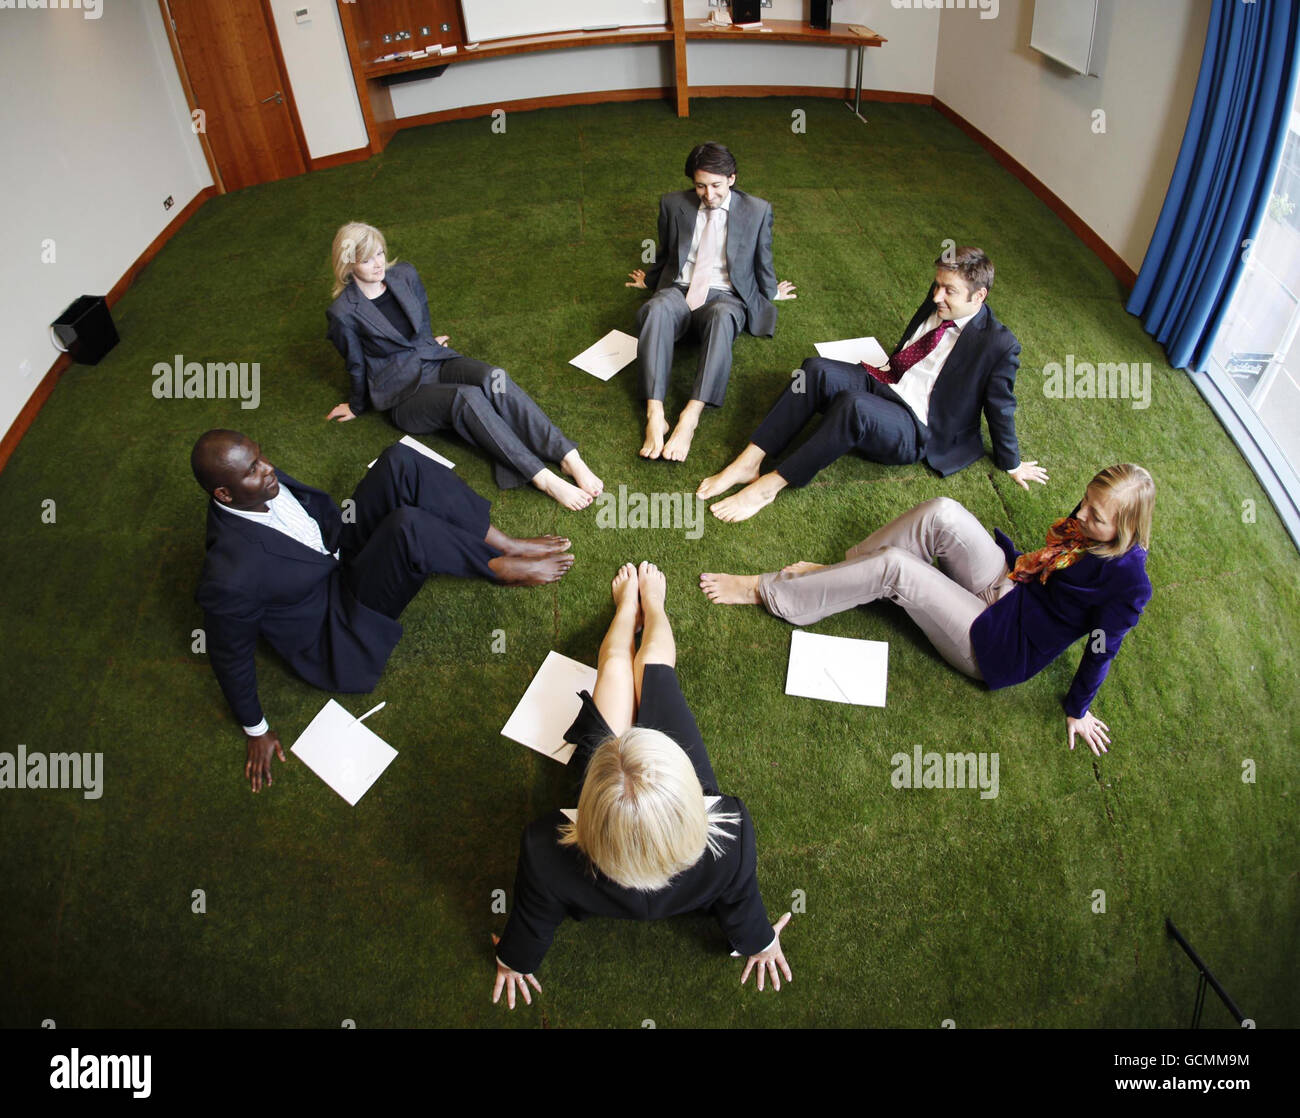 Grass meeting room Stock Photo